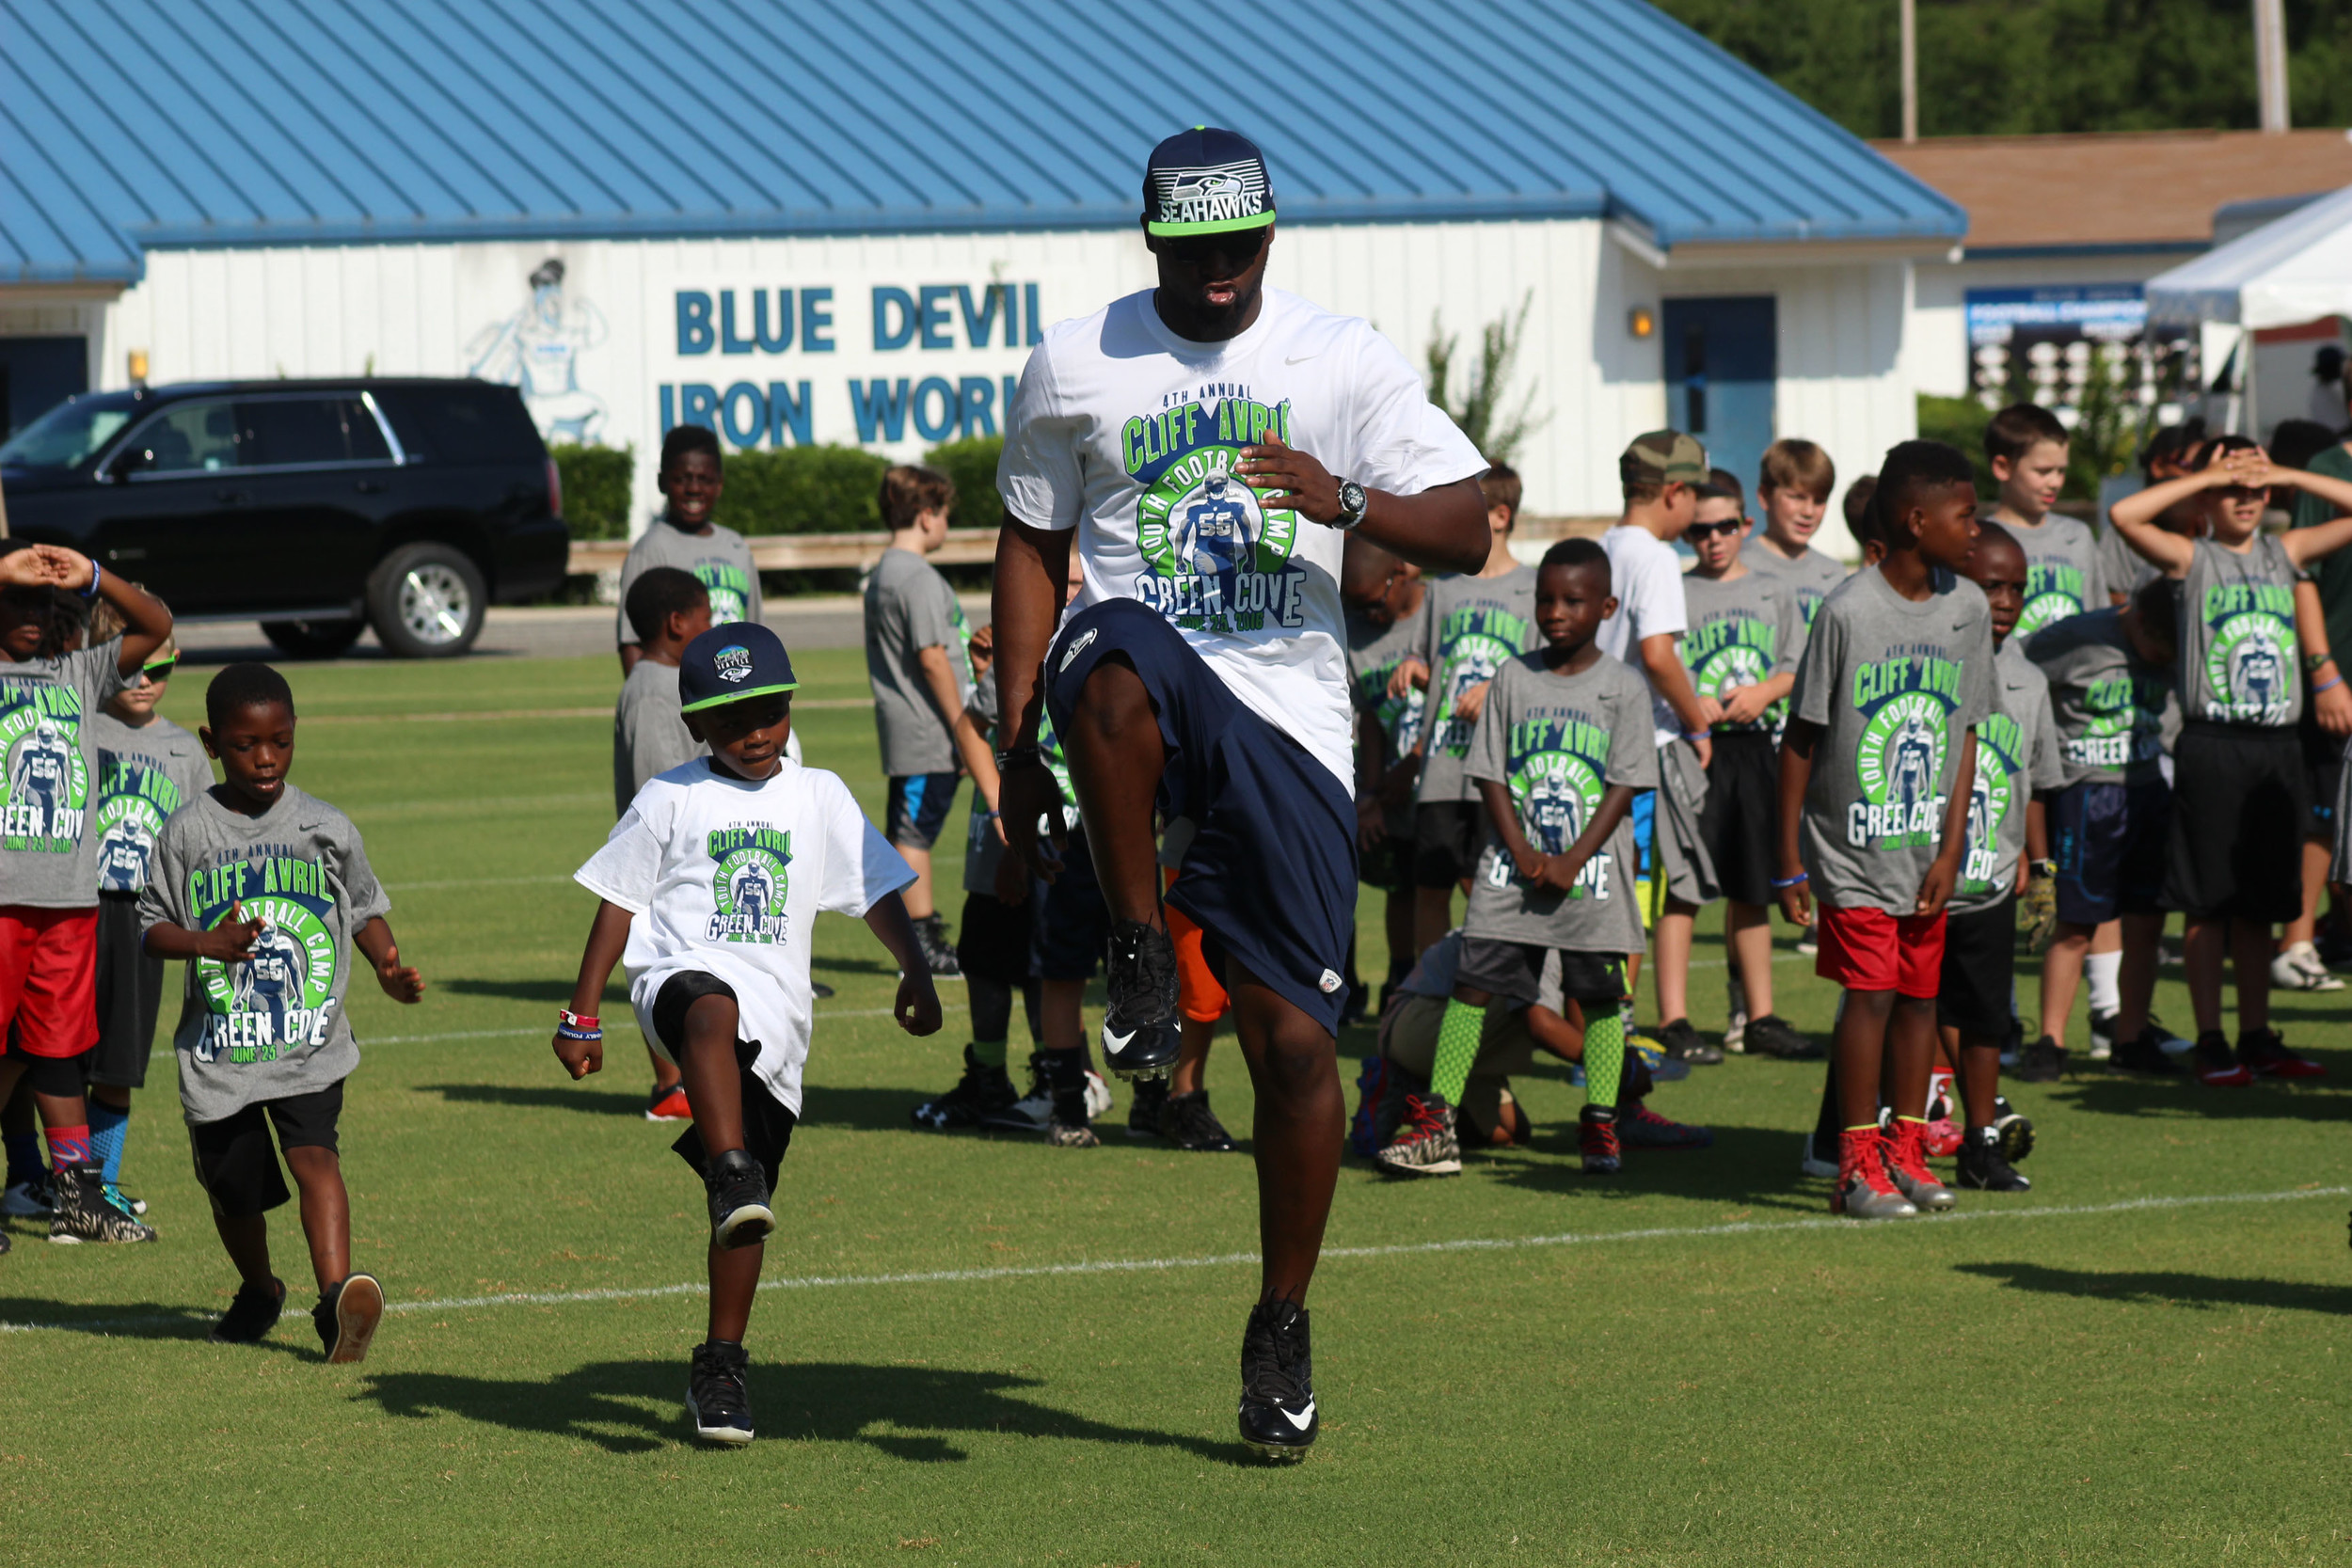 Former Blue Devil Cliff Avril does some high-stepping in warmup drills at the Cliff Avril Youth Football Camp held Saturday at Clay High School.